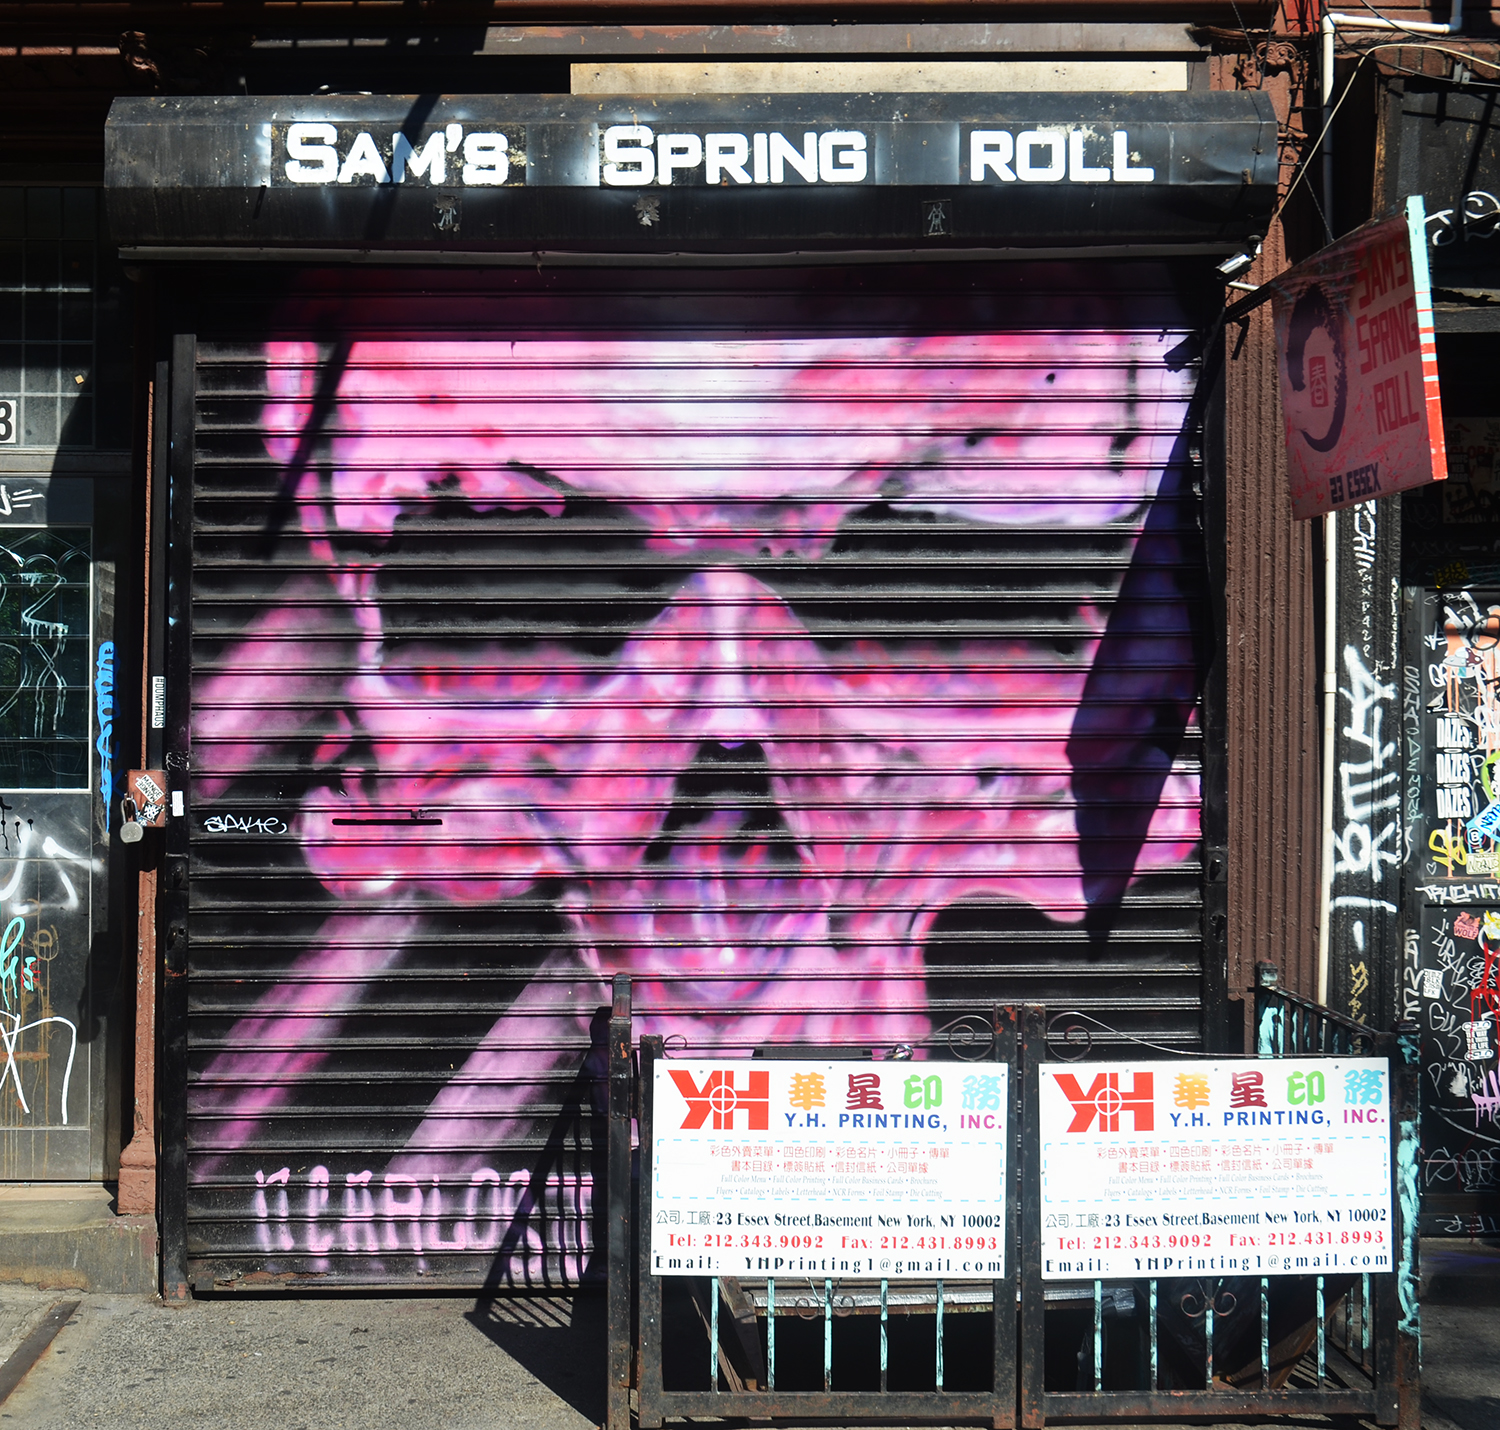 100 Gates - Sam Spring Roll at 23 Essex Street by N. Carlos J